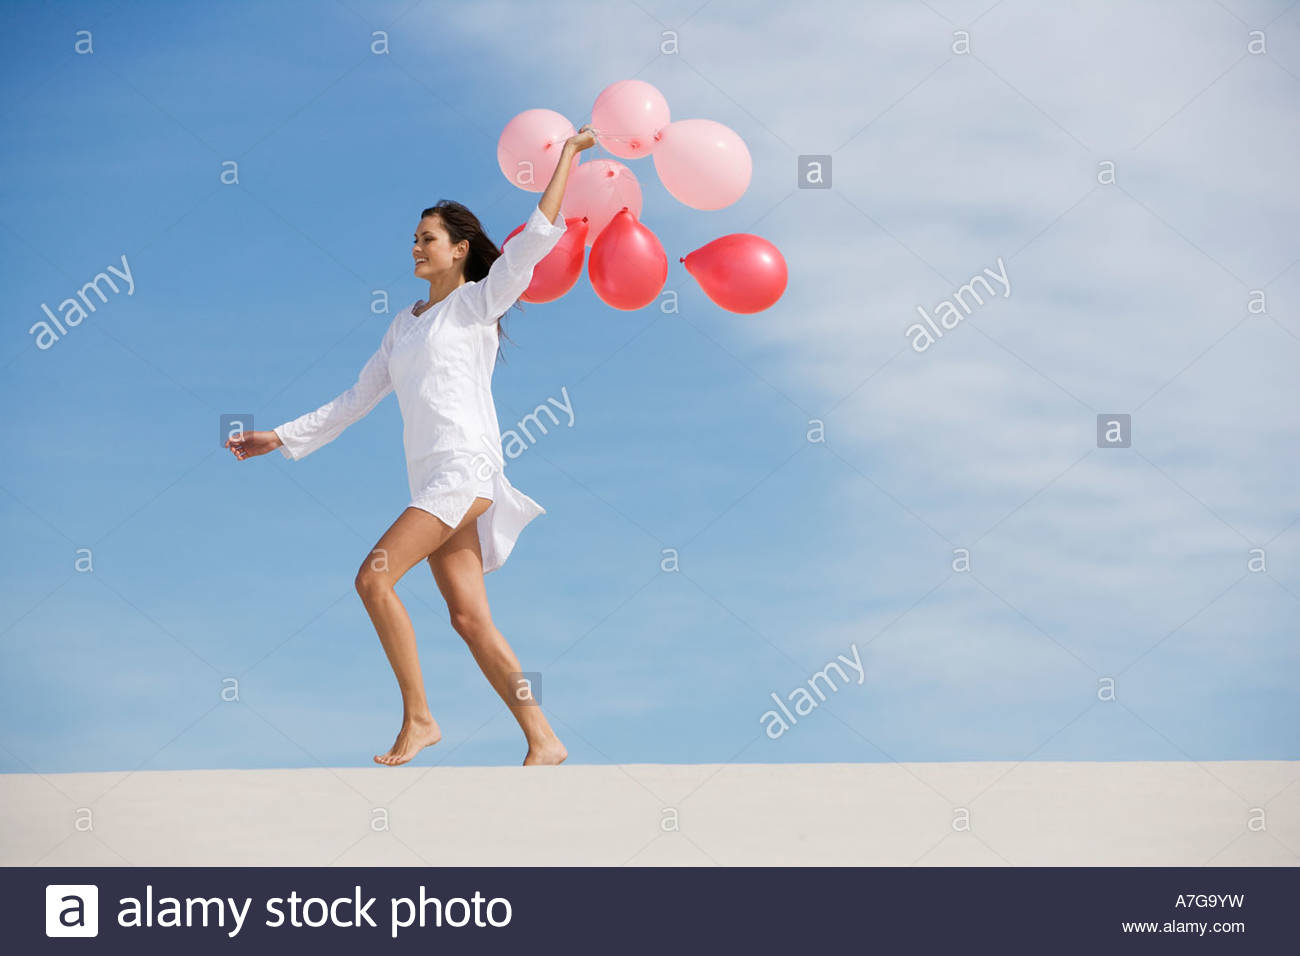 A woman walking in the desert holding a bunch of balloons Stock Photo